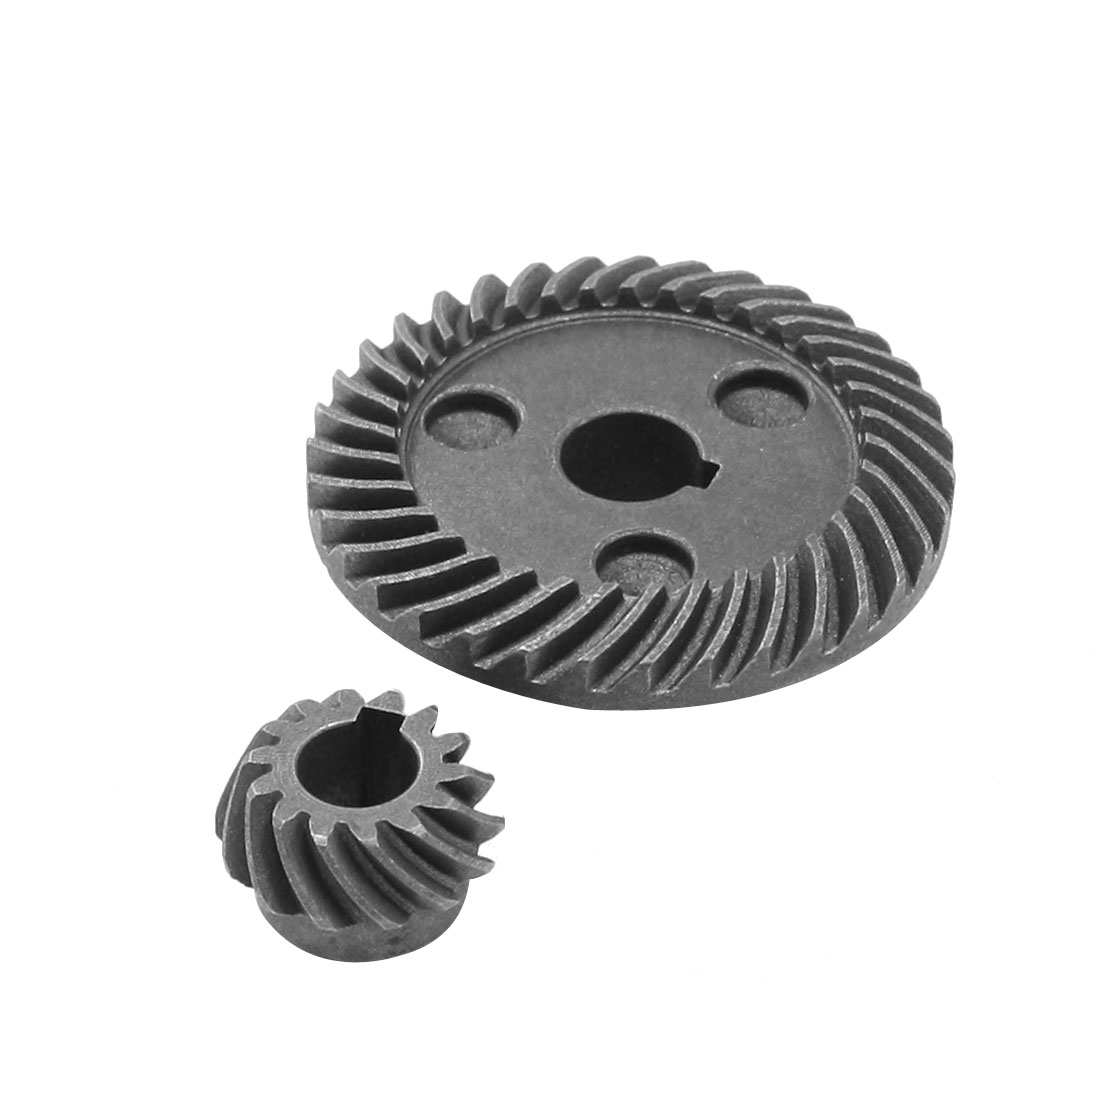 Repair Part Spiral Bevel Gear Pinion Set for Makita 9523 Angle Grinder